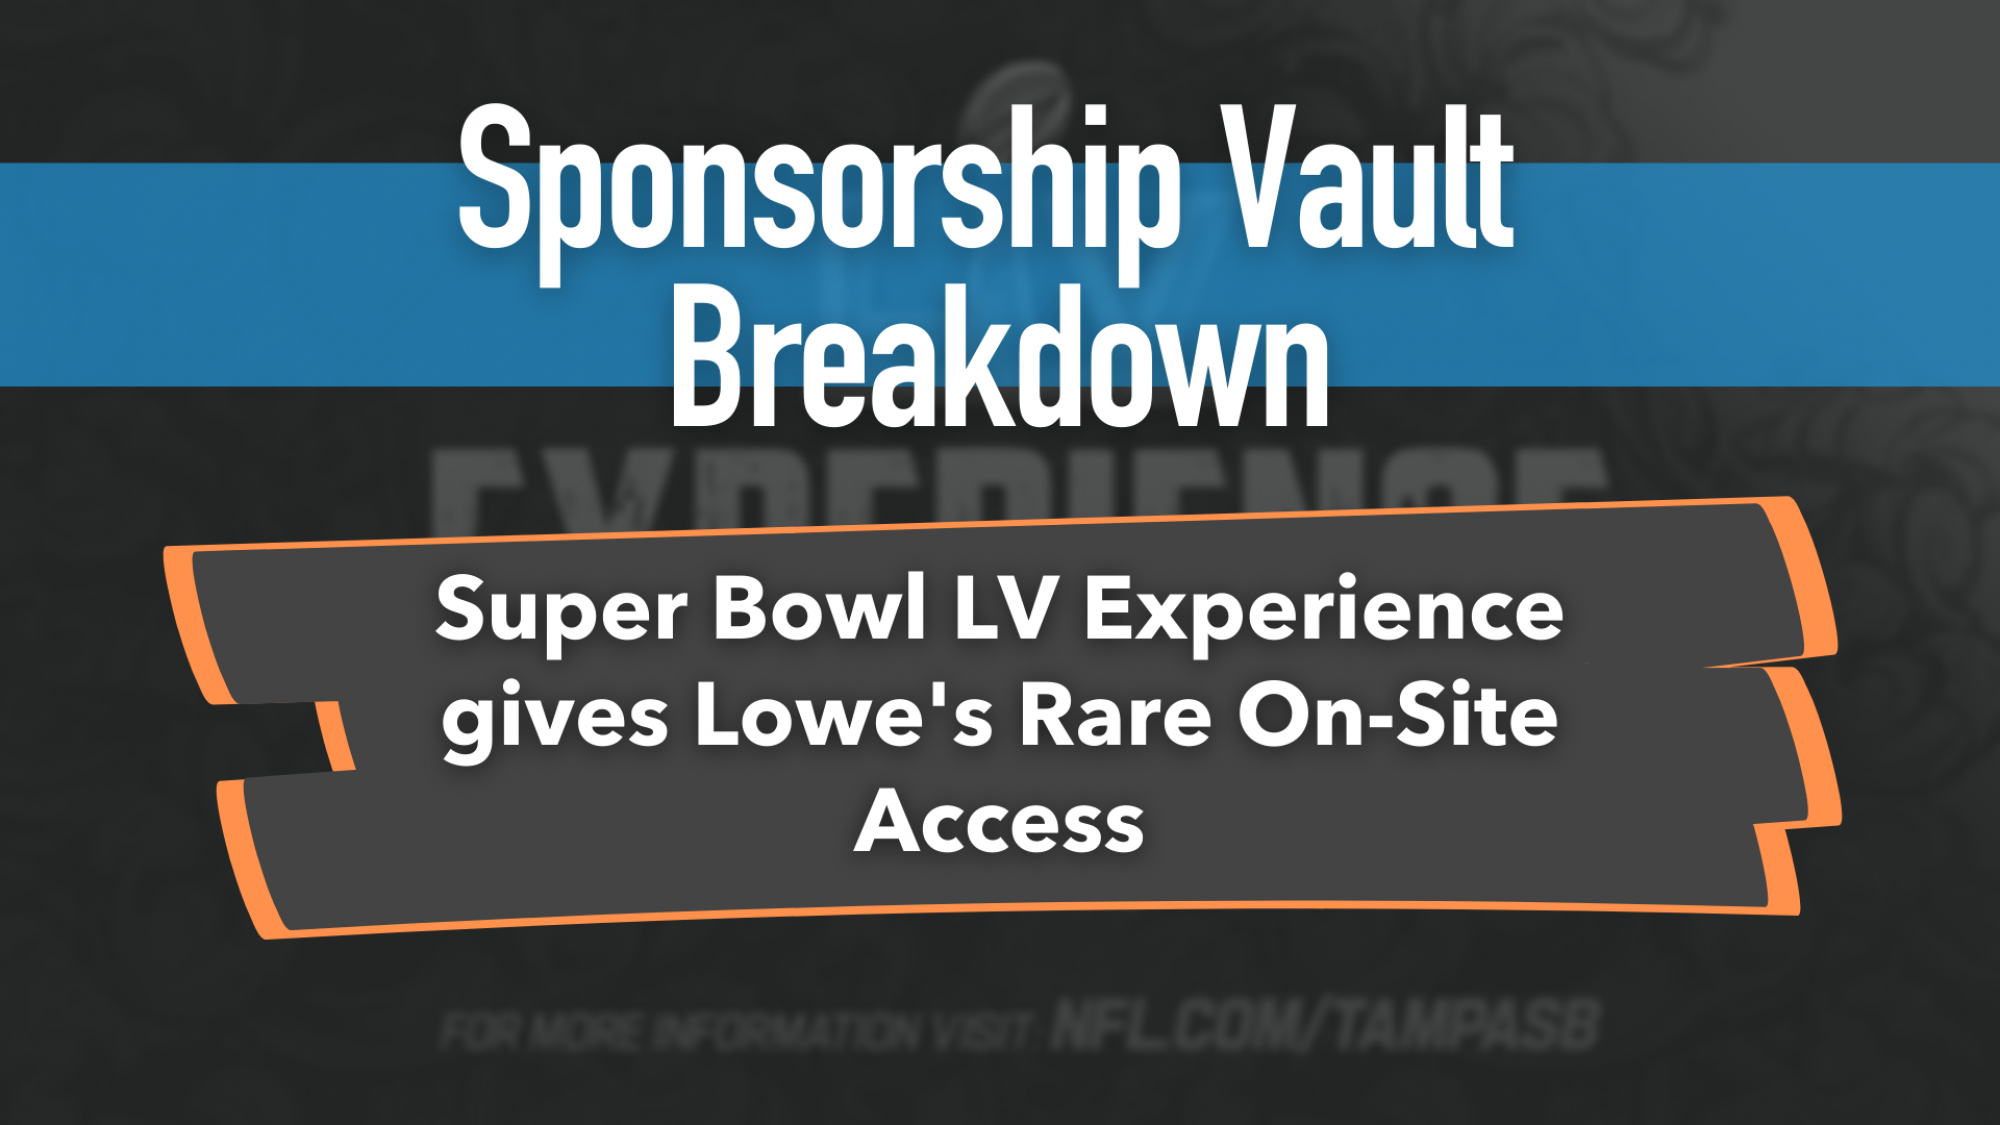 Lowes and Super Bowl Sponsorship Vault Image